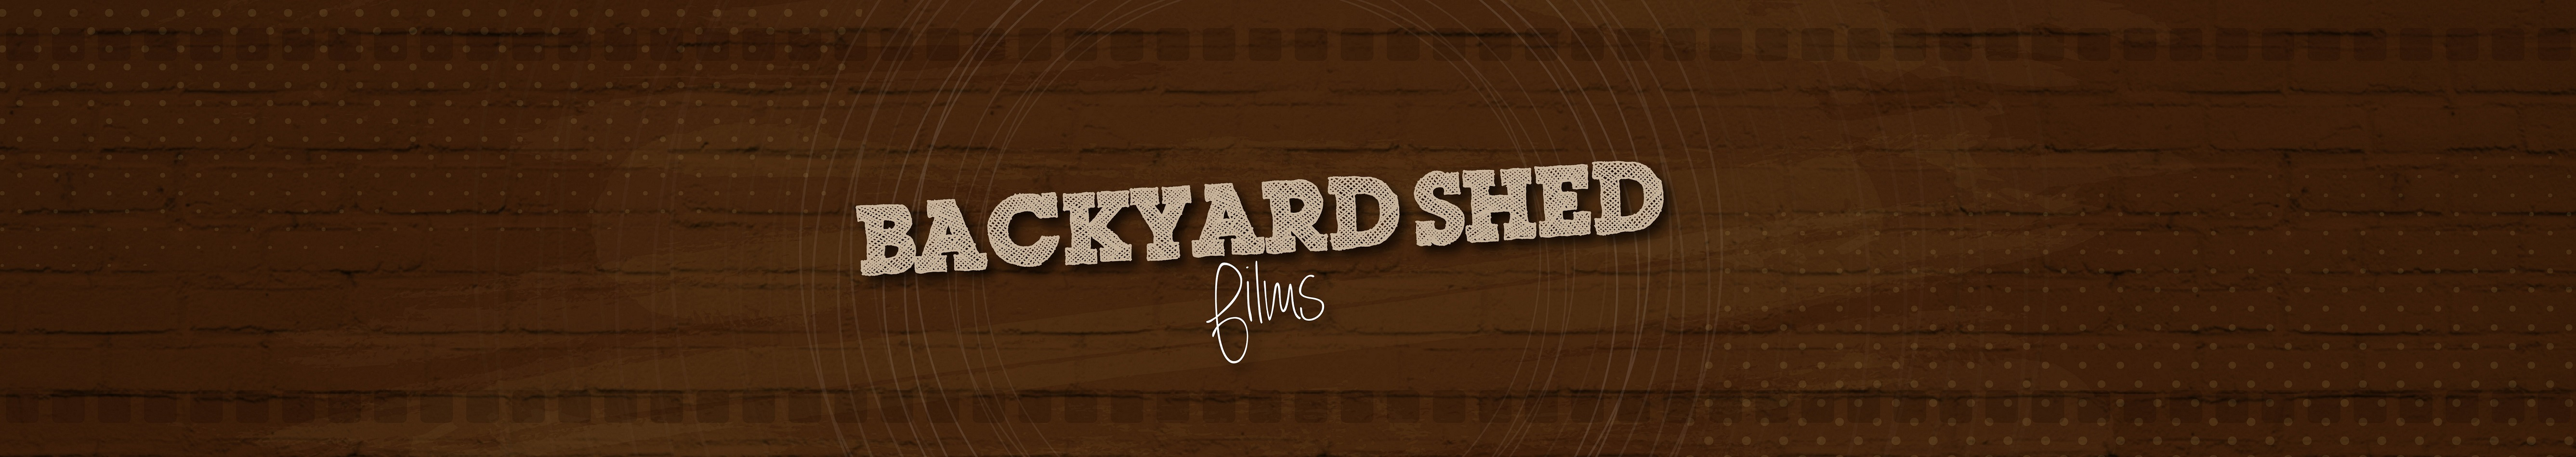 Tour Section | Backyard Shed Films